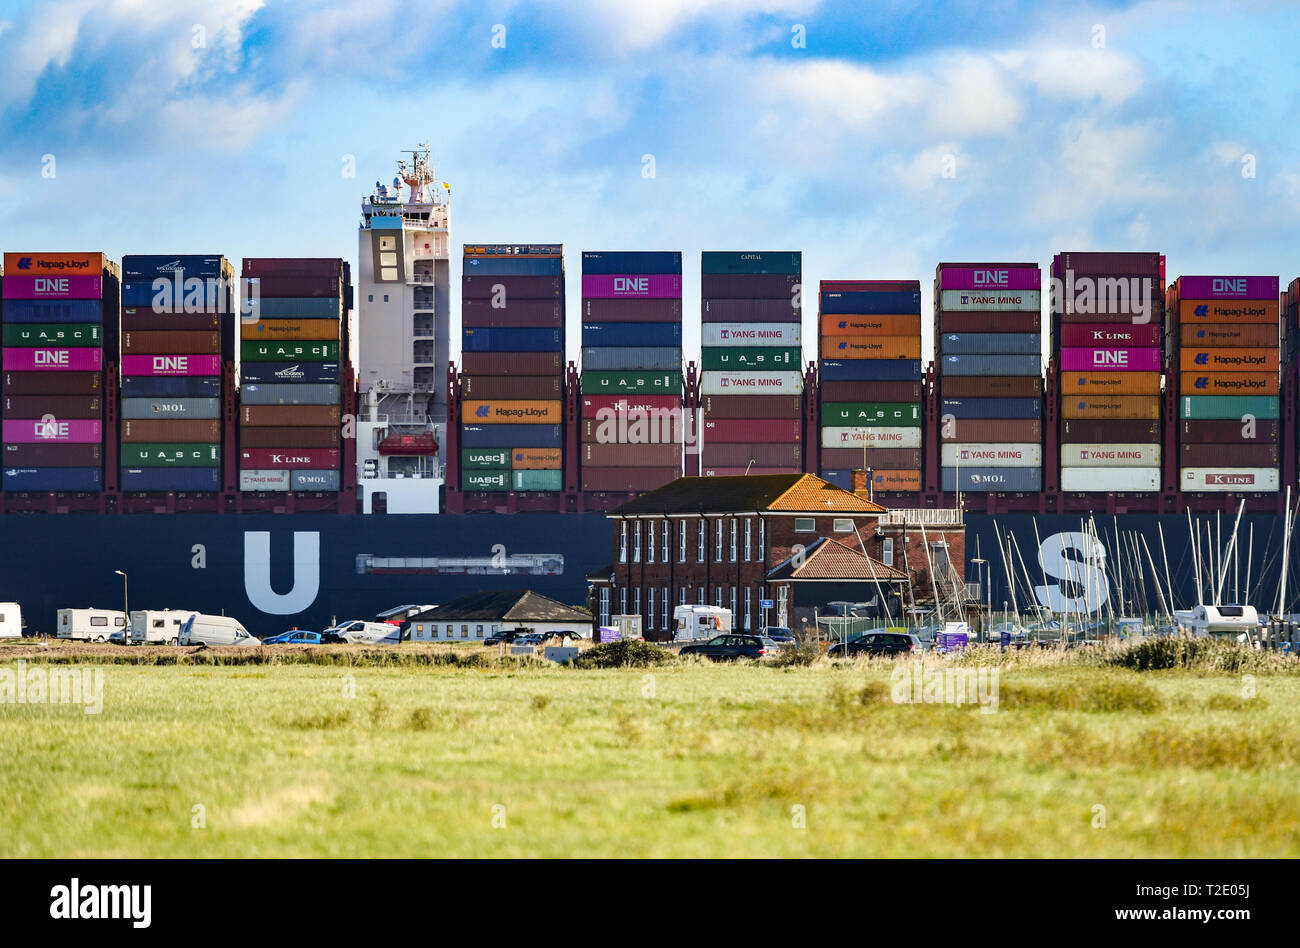 Fully loaded Al Dahna Super Container ship  leaves Southampton Docks dwarfing the buildings of Calshot taking exports across the World. - Stock Image